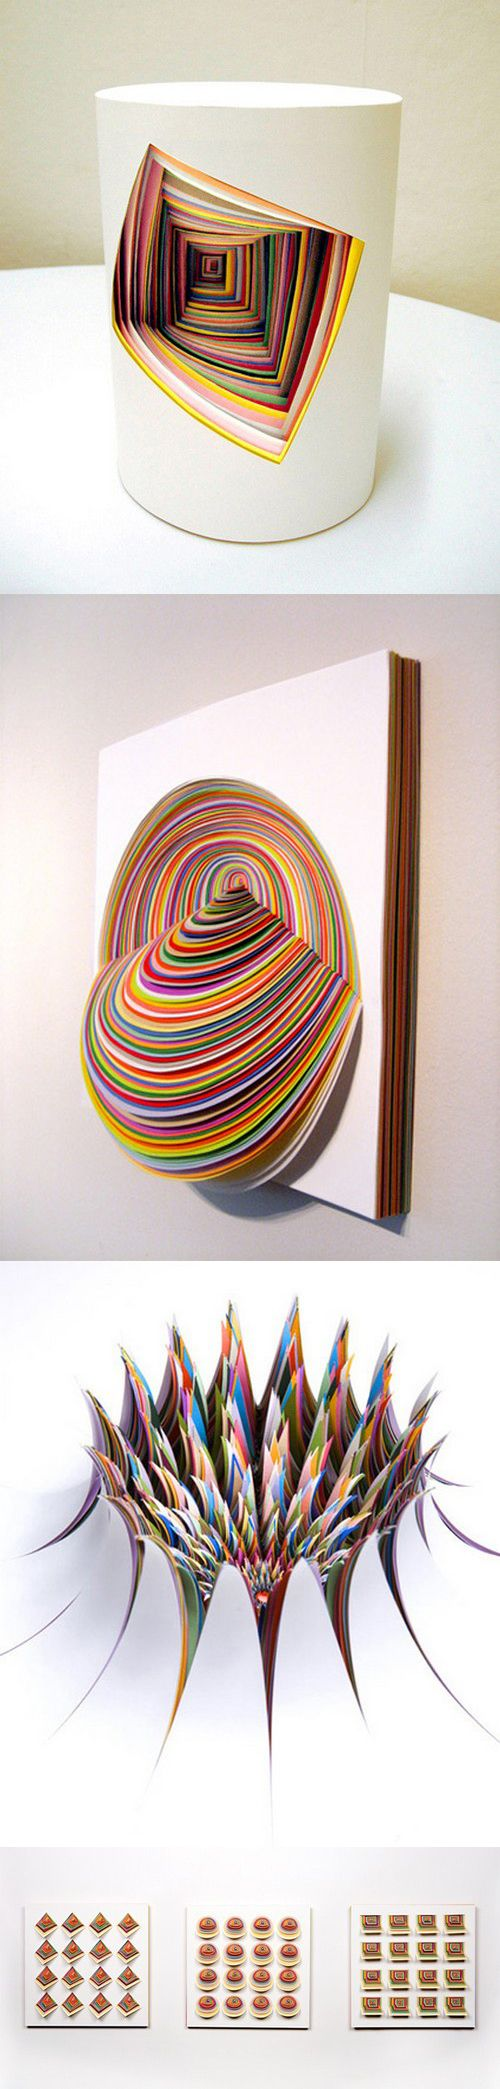 Awesome paper art by Jen Stark (Pic) | Daily Dawdle